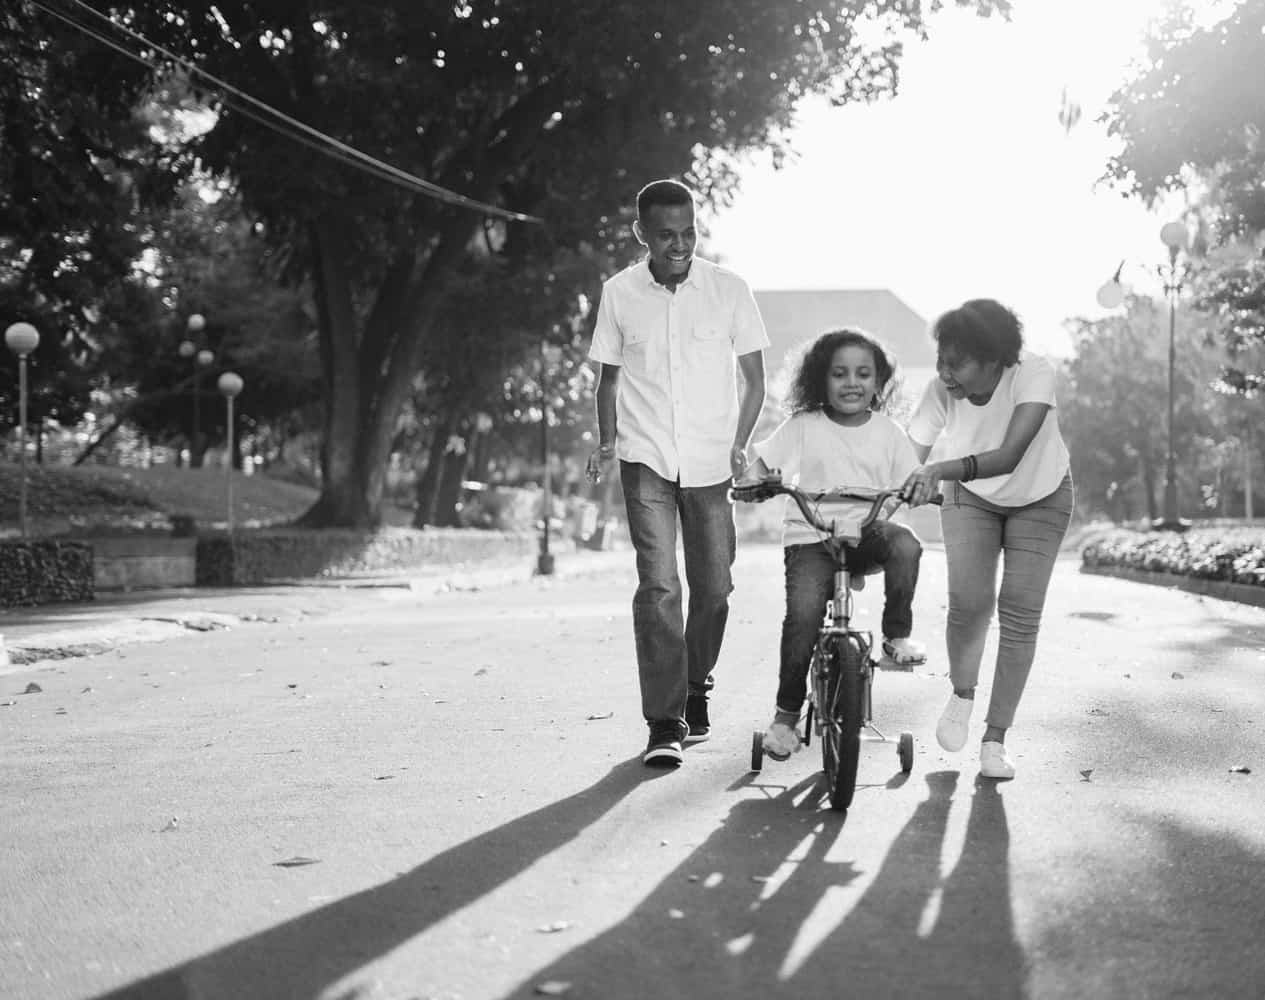 family, with mom and dad teaching child to ride a bike